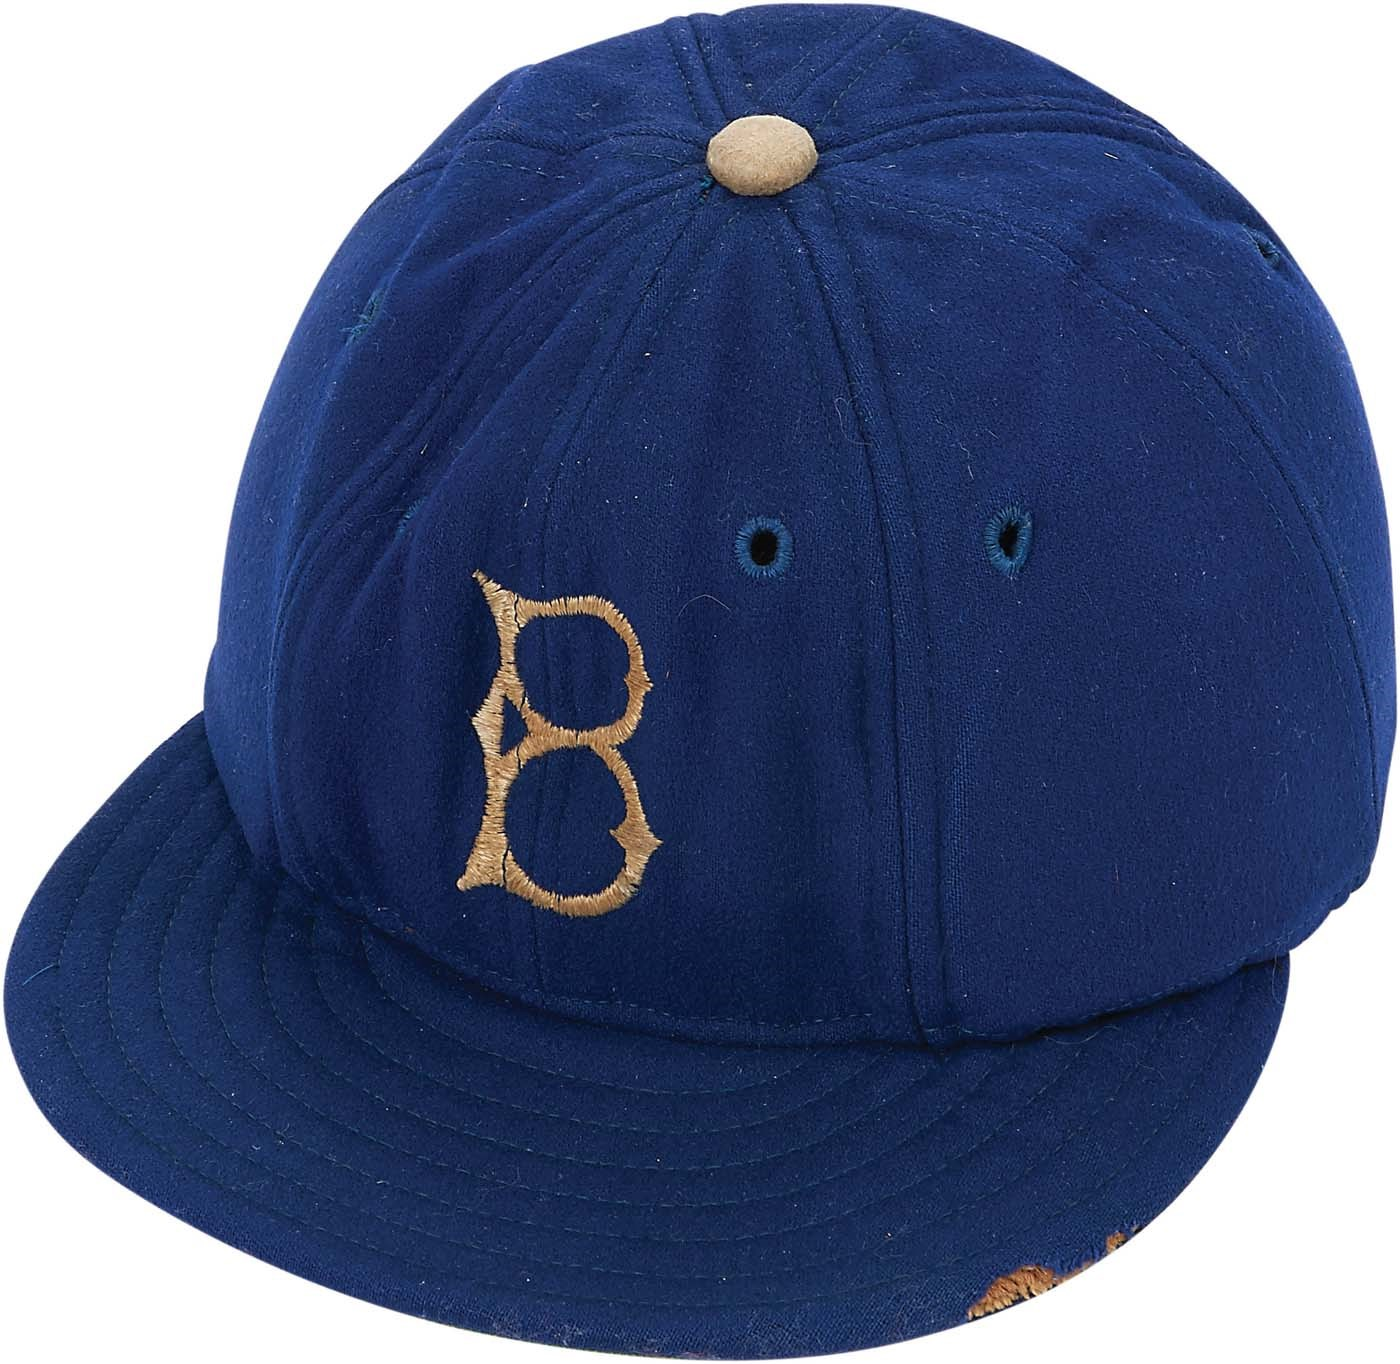 1947 Jackie Robinson Rookie Year Cap - Used To Fend Off Racially Motivated Beanballs (Rachel Robinson Letter)